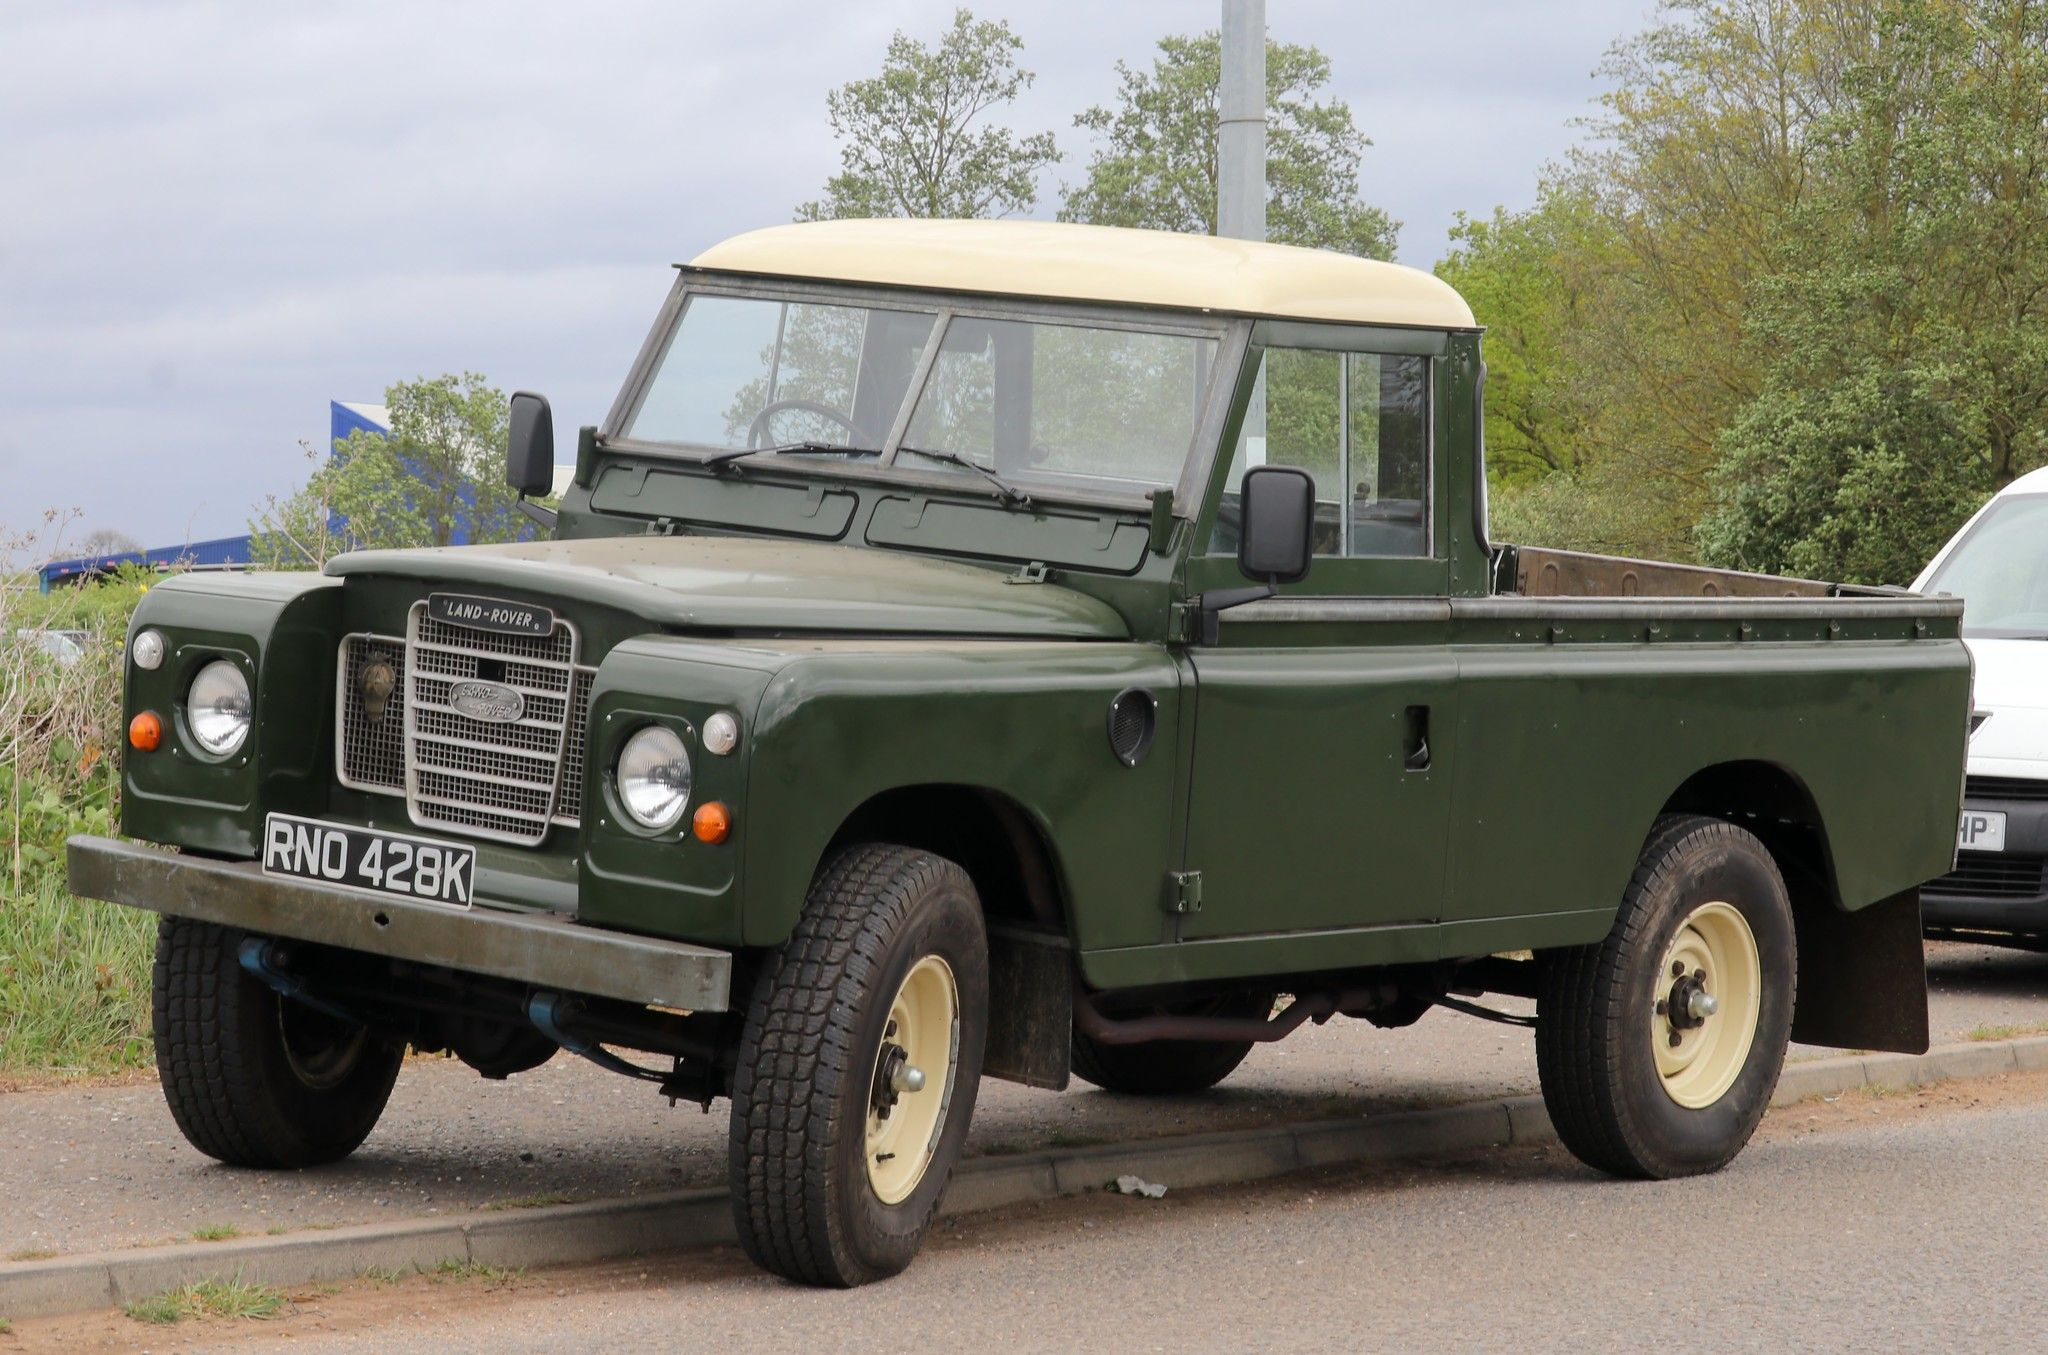 Rno 428k Land Rover Pick Up Land Rover Defender Land Rover Series